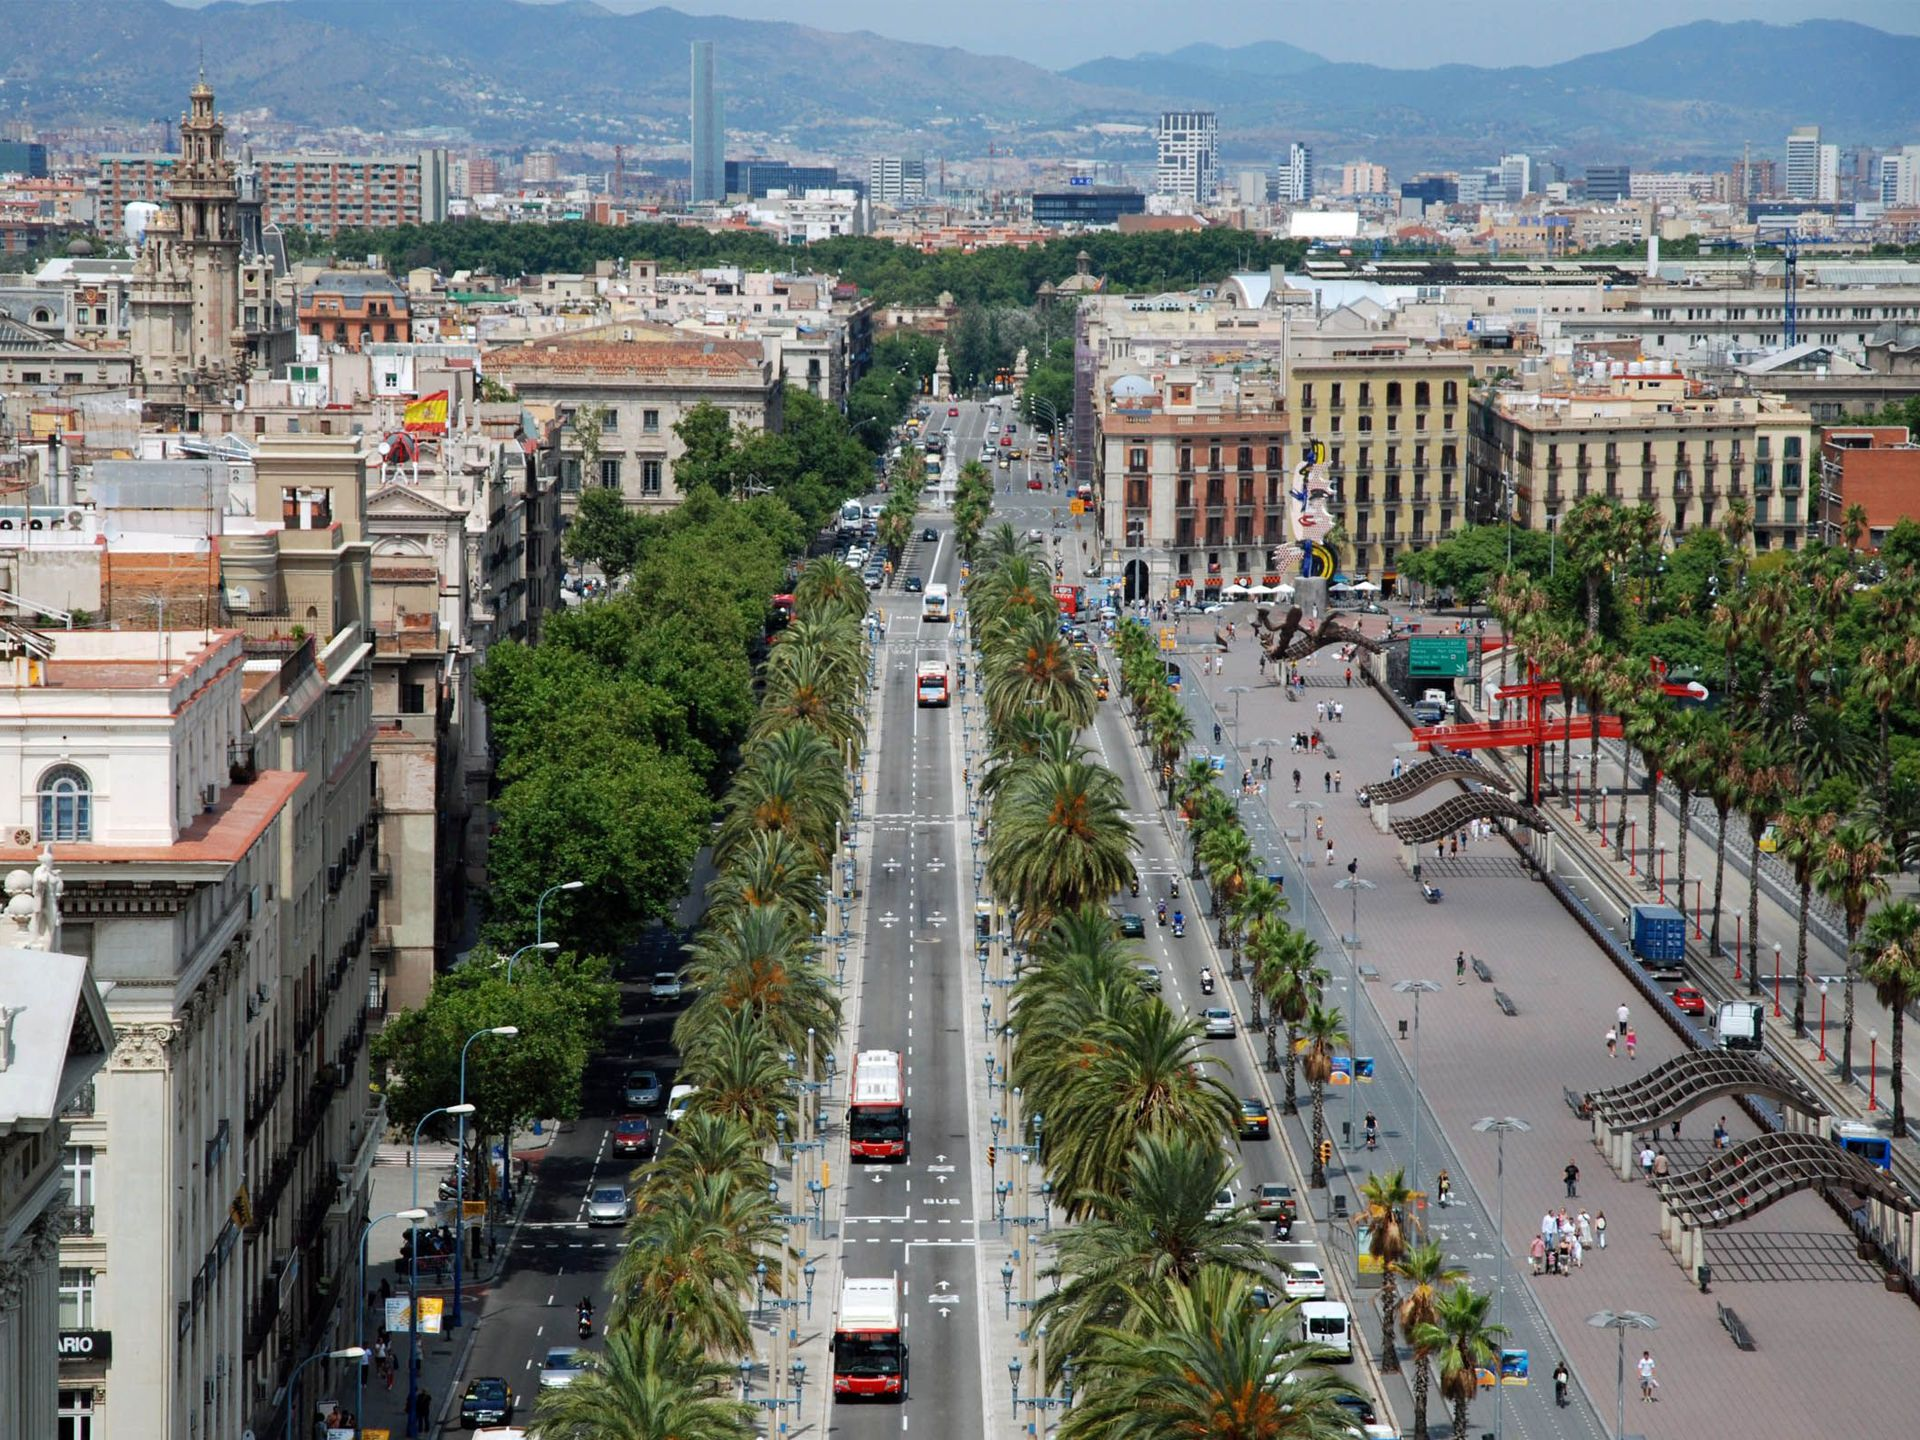 Barcelona Image: Barcelona City Wallpapers: HD Wallpapers For Desktop And